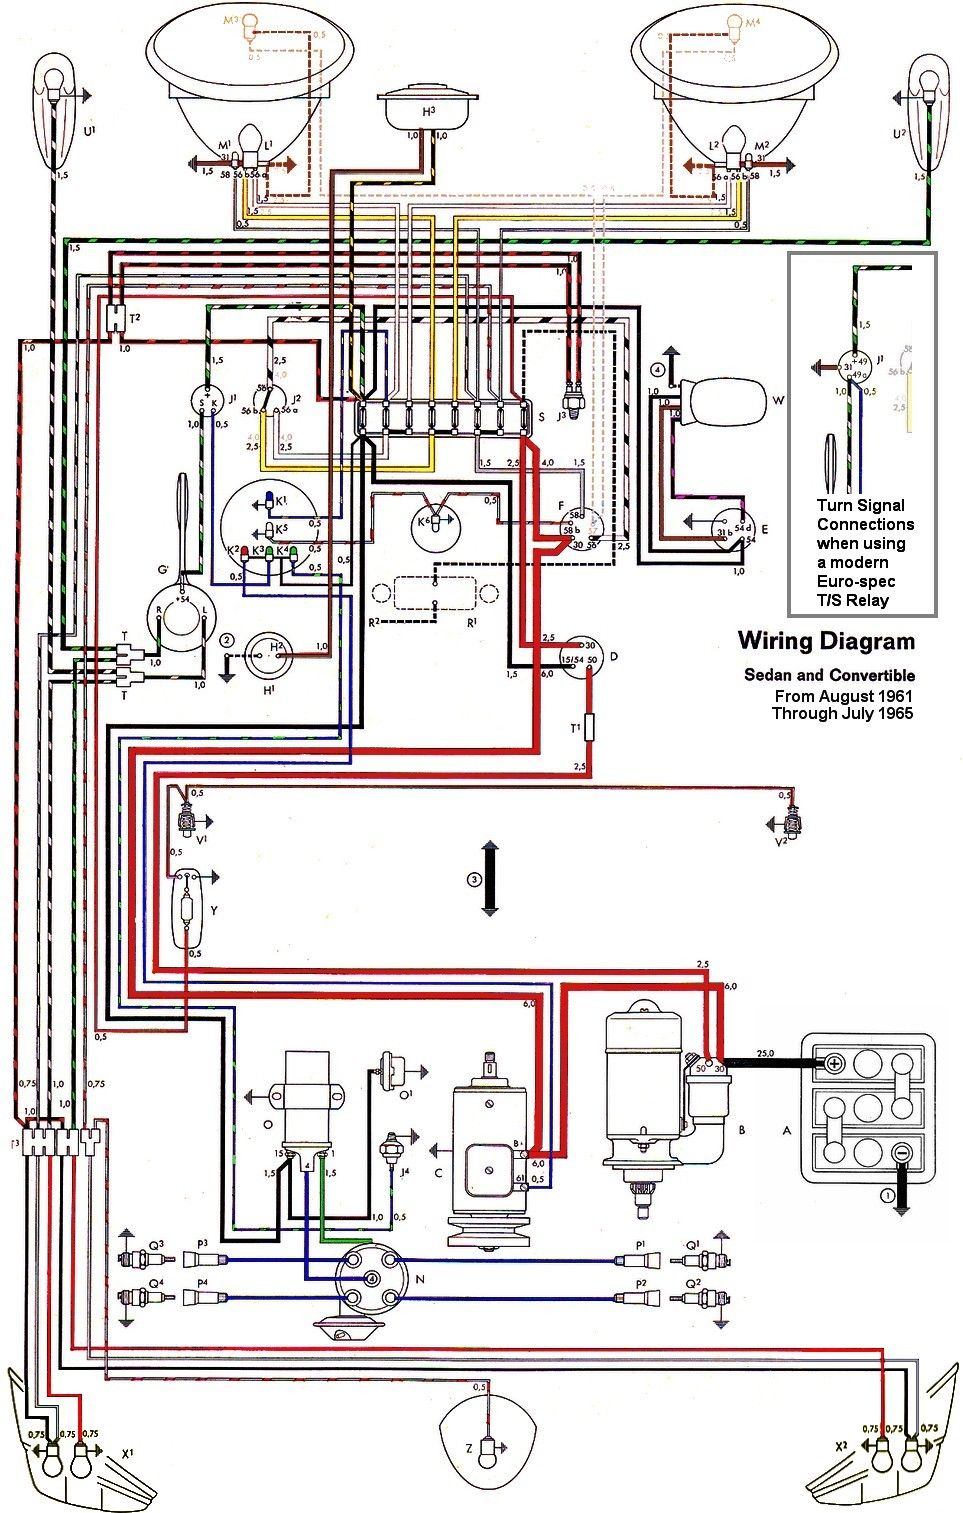 small resolution of wiring diagram vw beetle sedan and convertible 1961 1965 vw 1965 lincoln wiring diagram 1965 vw